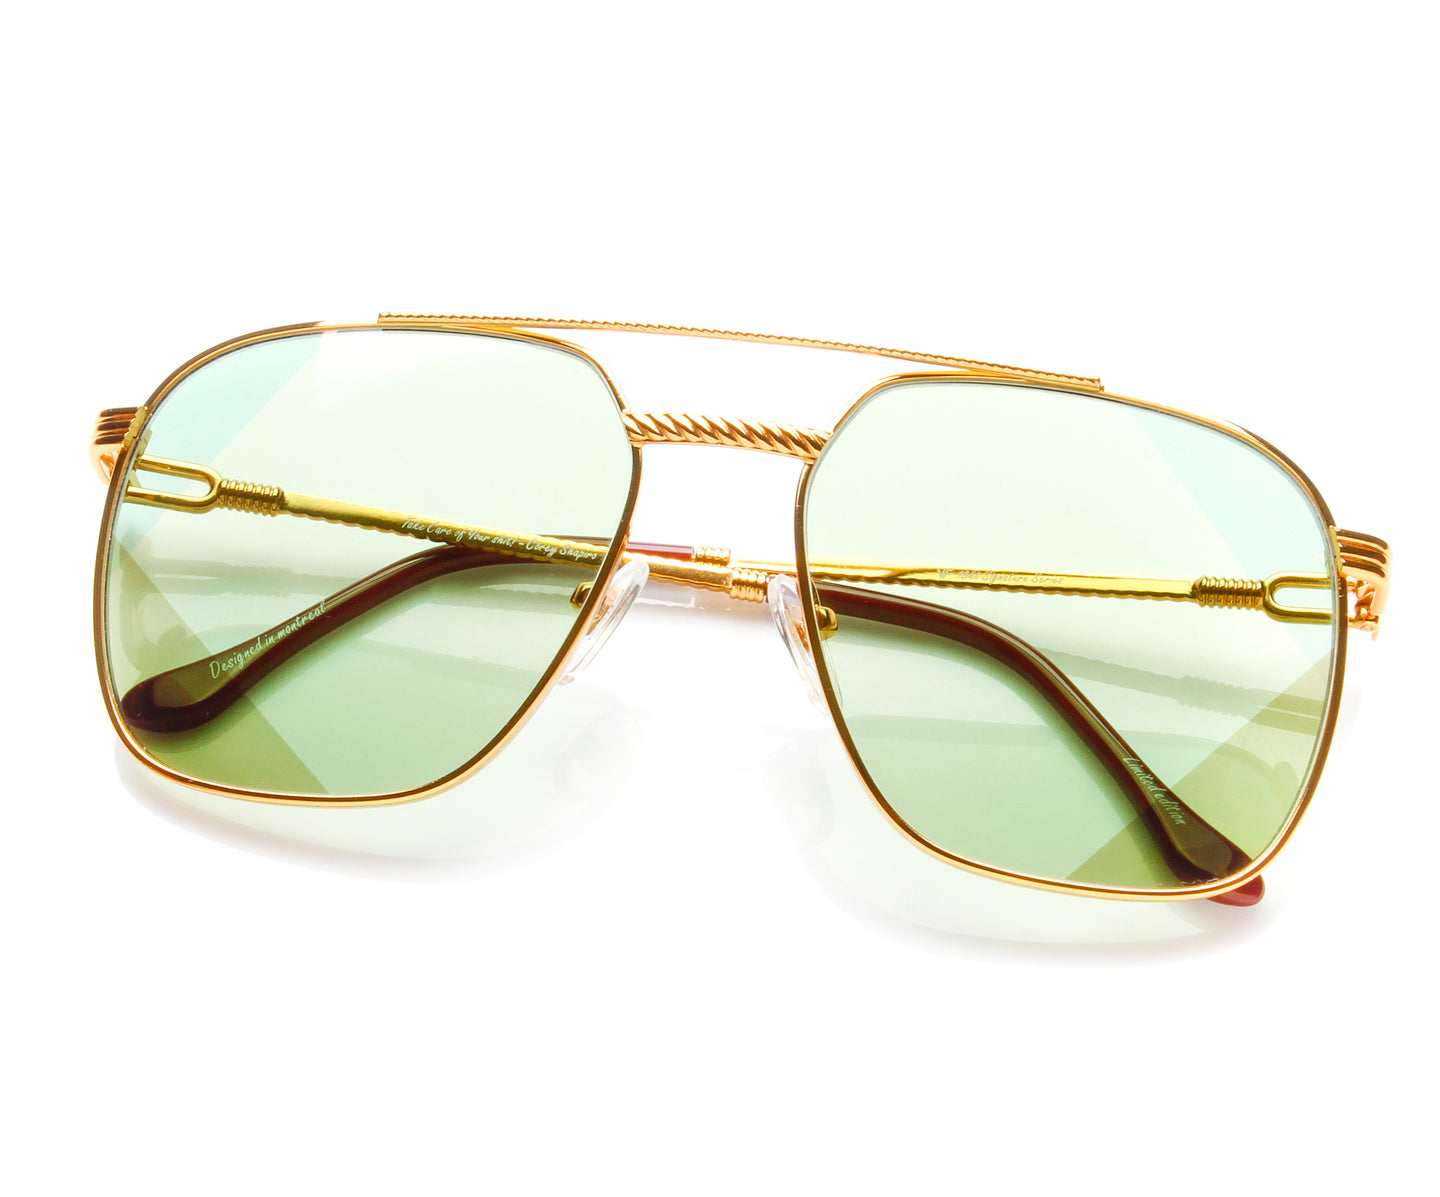 Narcos Masterpiece 18KT Gold Signature Edition (Picasso Green), VF Masterpiece , glasses frames, eyeglasses online, eyeglass frames, mens glasses, womens glasses, buy glasses online, designer eyeglasses, vintage sunglasses, retro sunglasses, vintage glasses, sunglass, eyeglass, glasses, lens, vintage frames company, vf